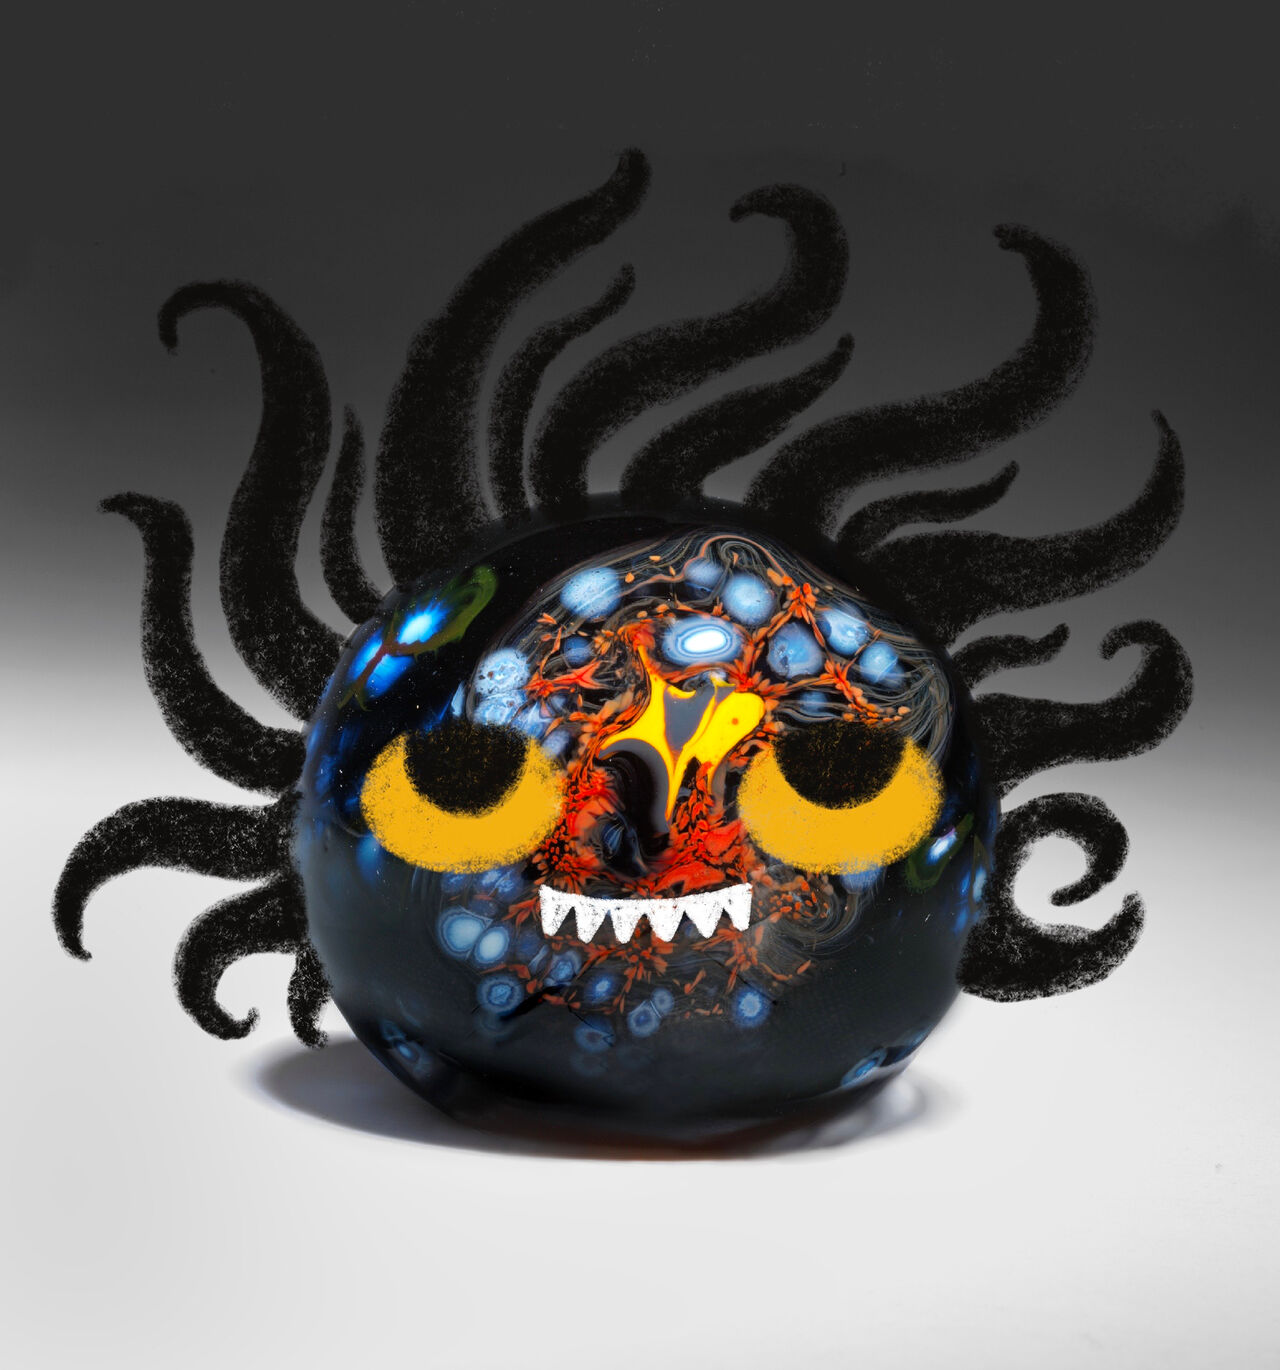 A photo of a glass paperweight with illustration over it to look like a wee monster.